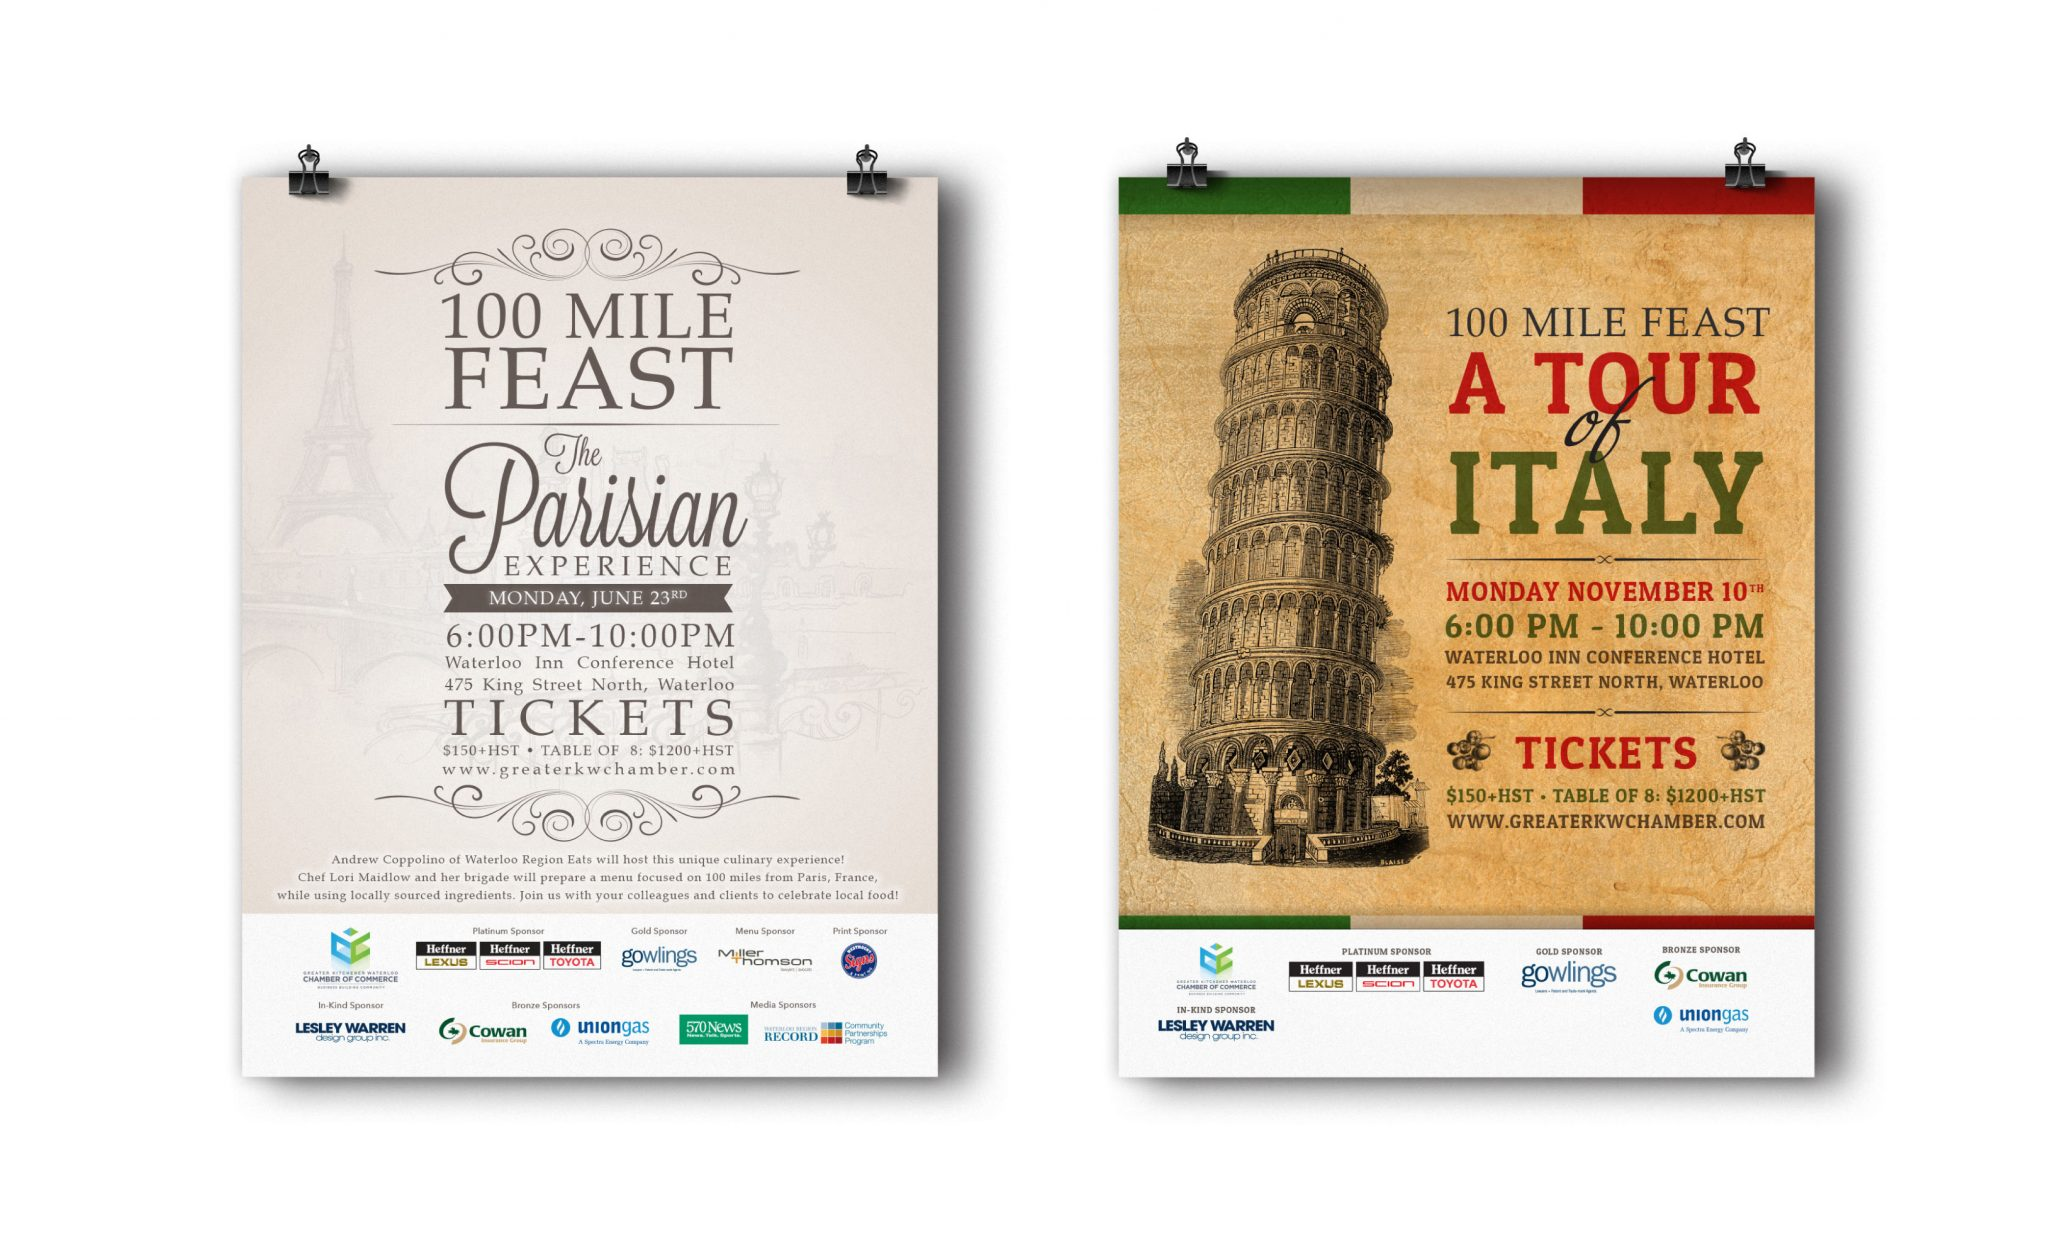 100 Mile Feast The Parisian Experience and a Tour of Italy posters.